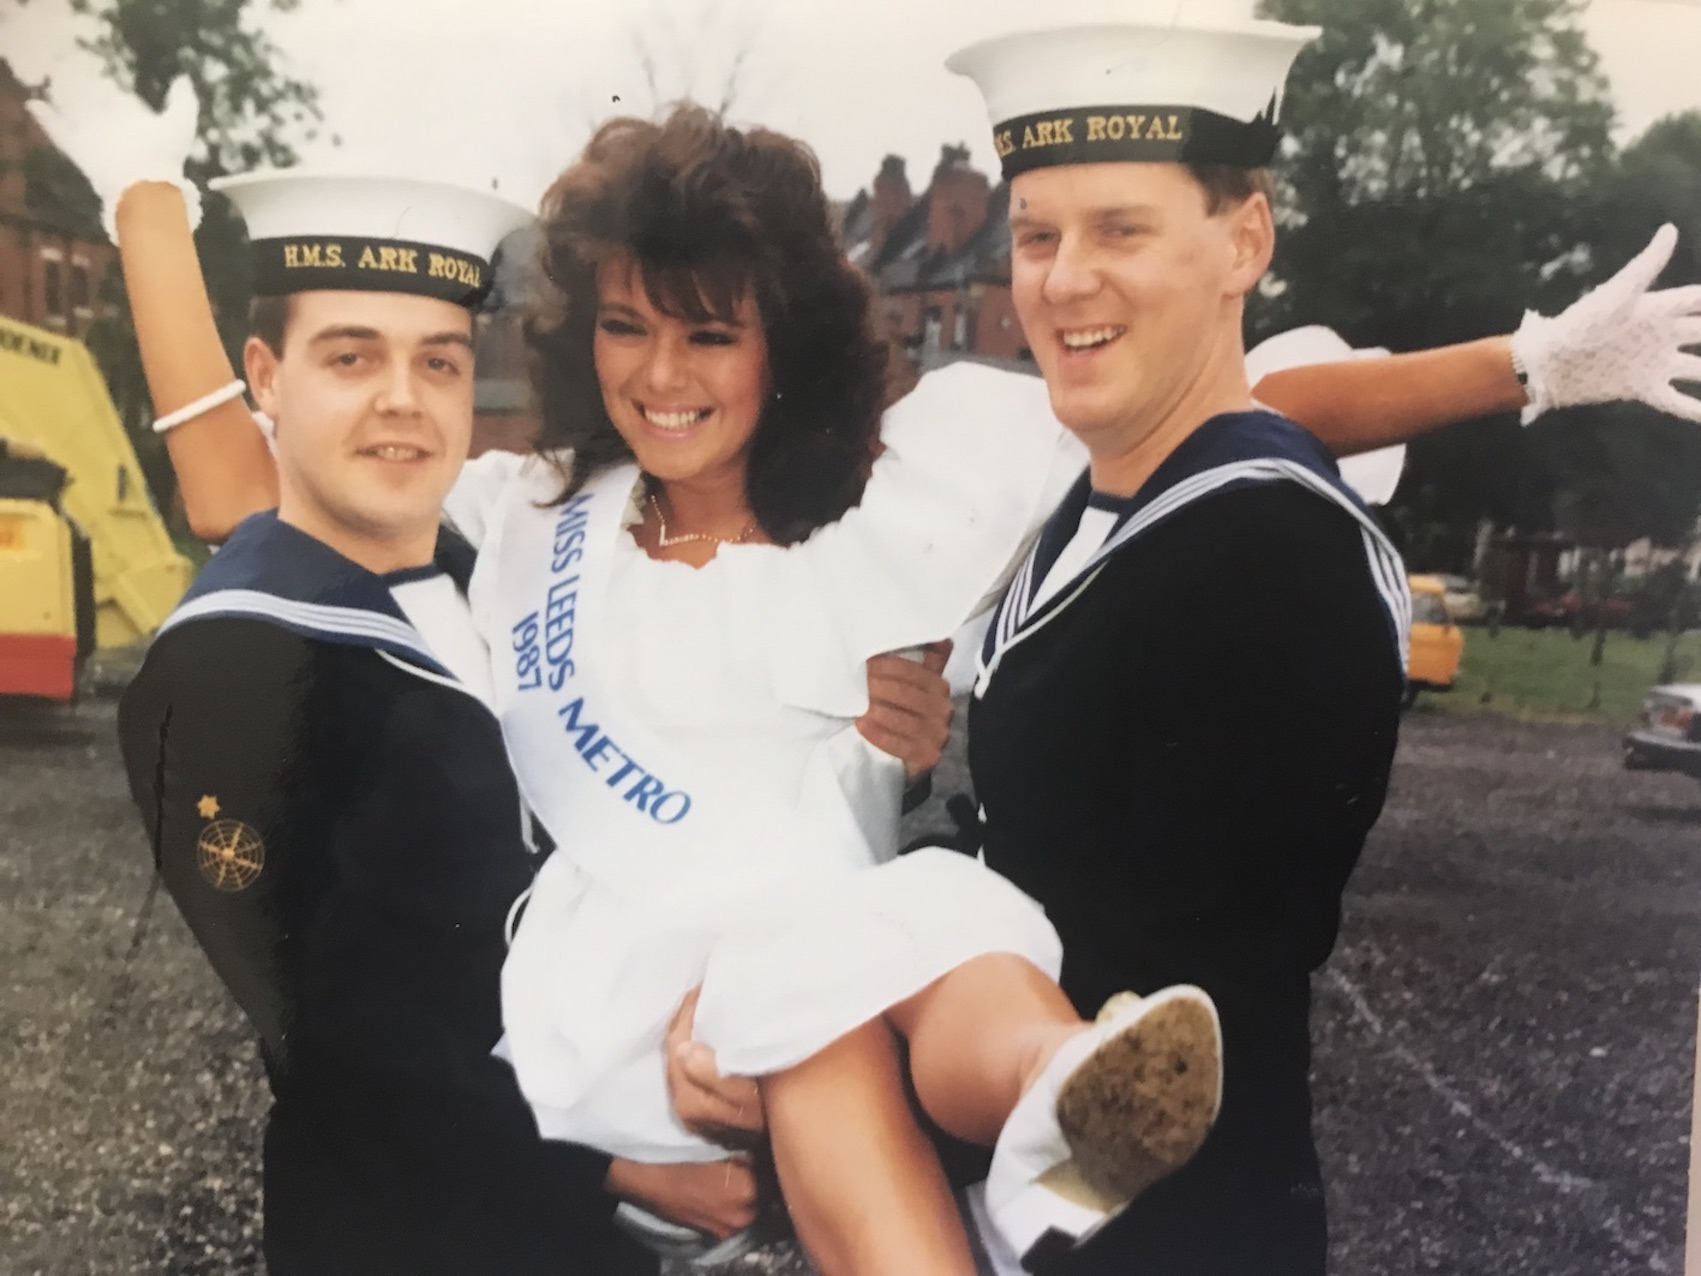 Angie Beasley, competing for Miss England in the 1987